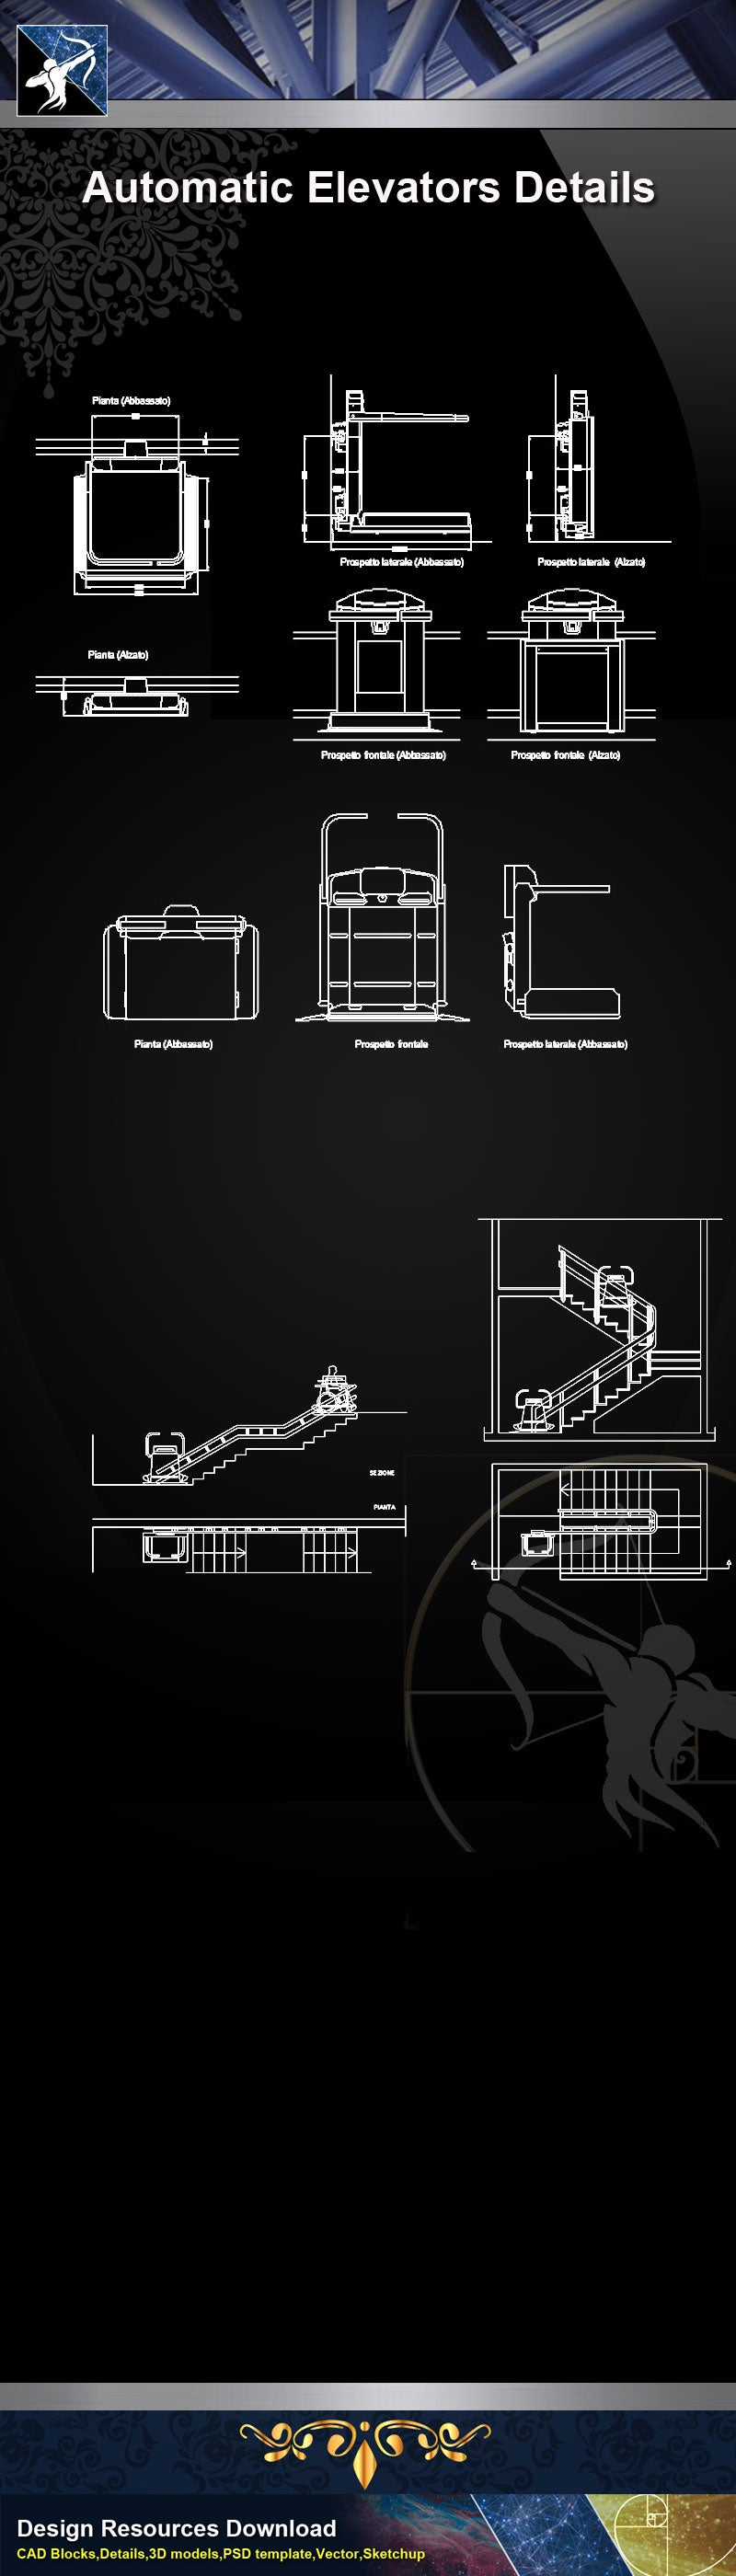 【Stair Details】Automatic Elevators